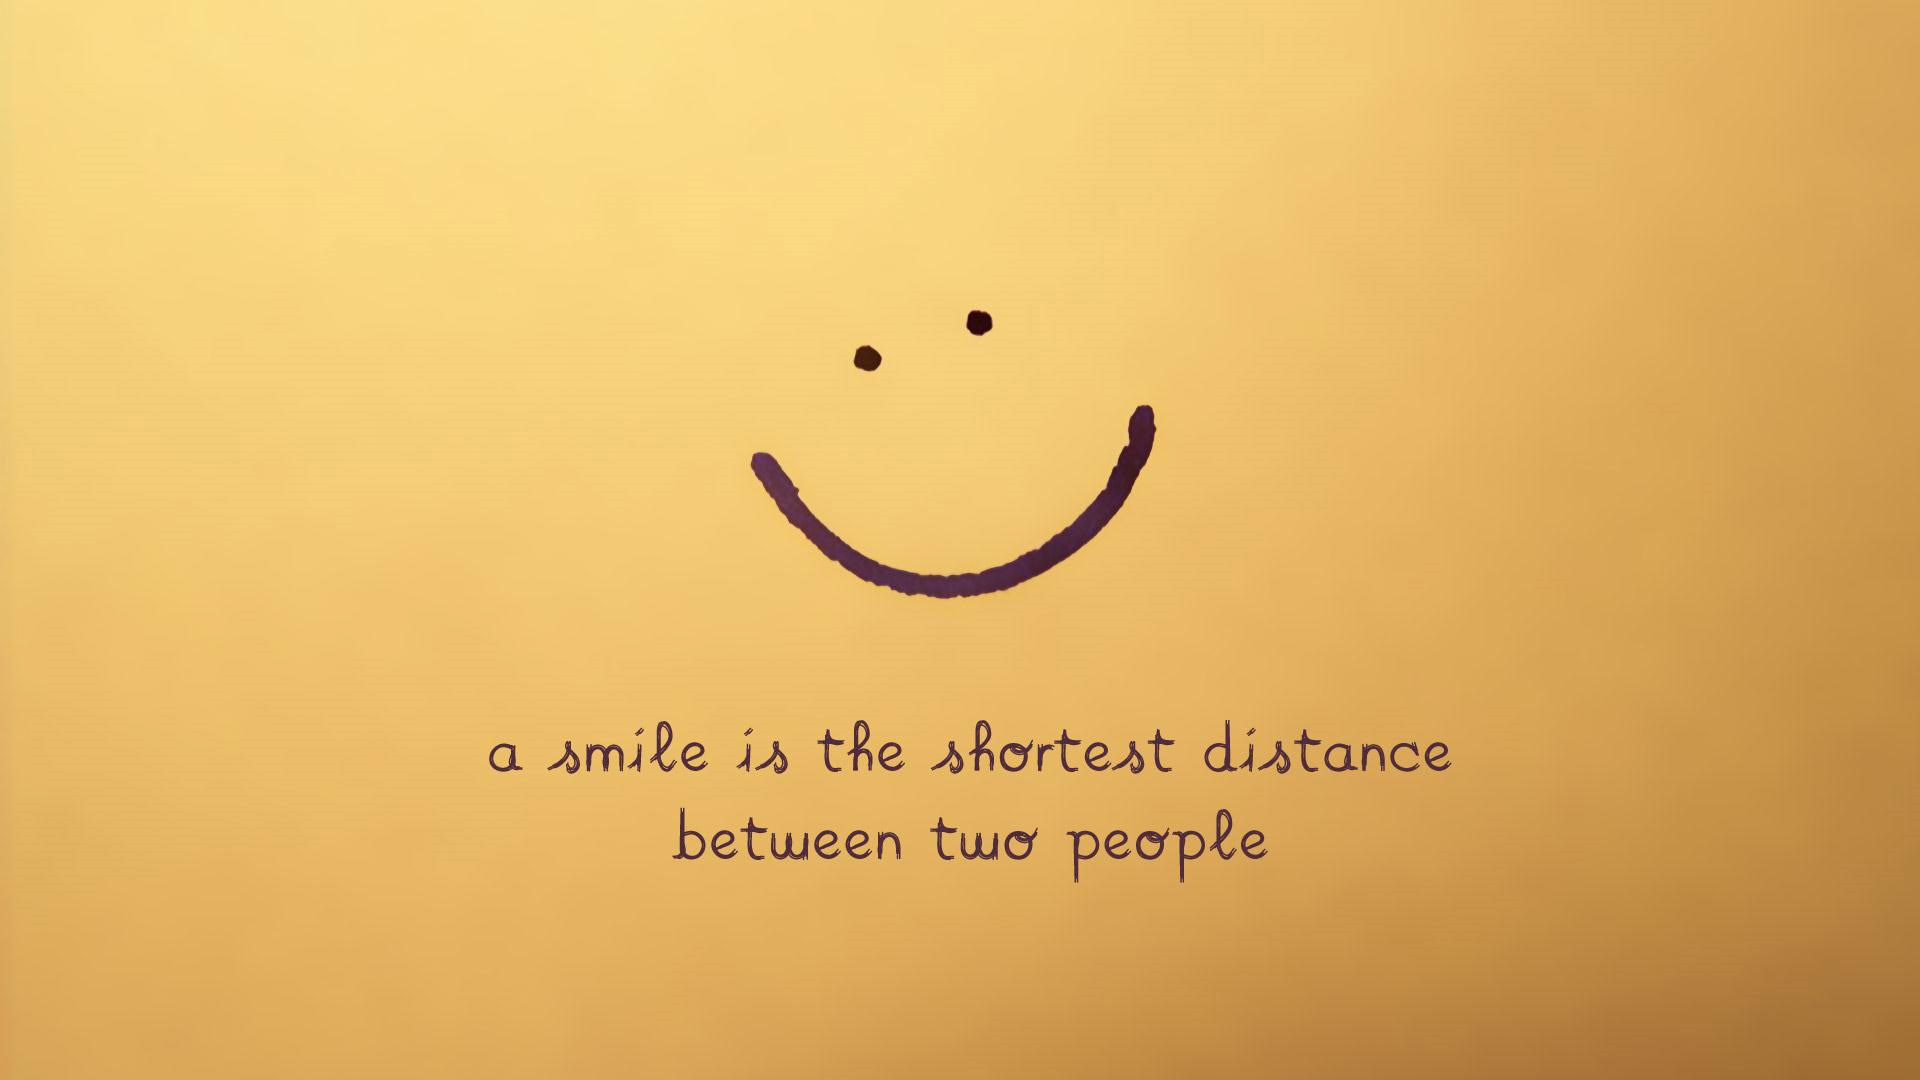 Smiley face with philosophical sentence wallpaper